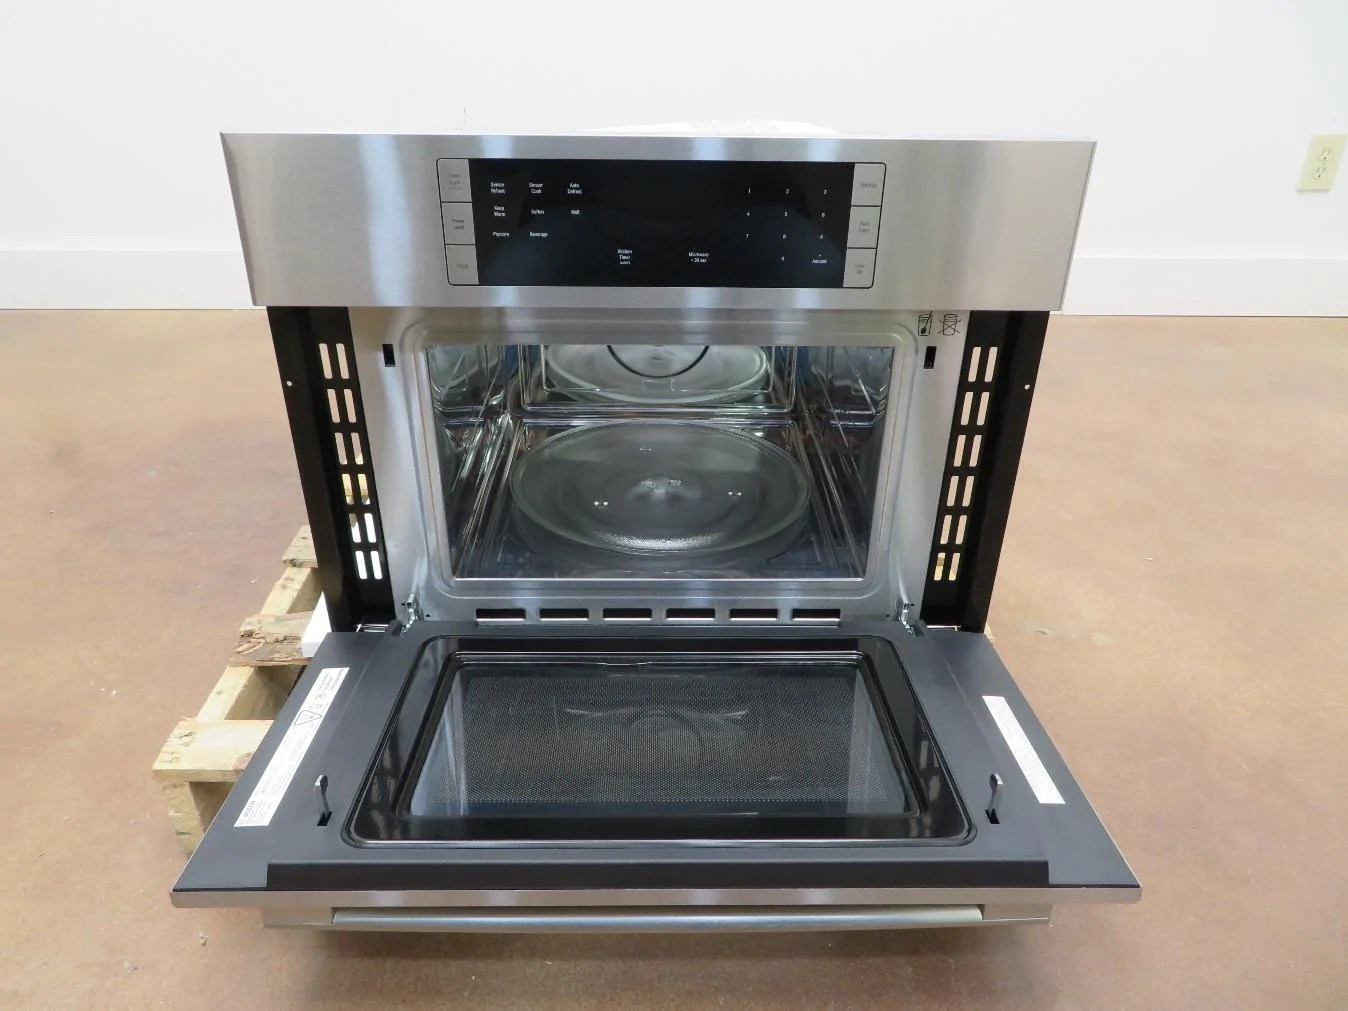 bosch 500 series 27 1 6 lcd controls built in microwave oven hmb57152uc imgs